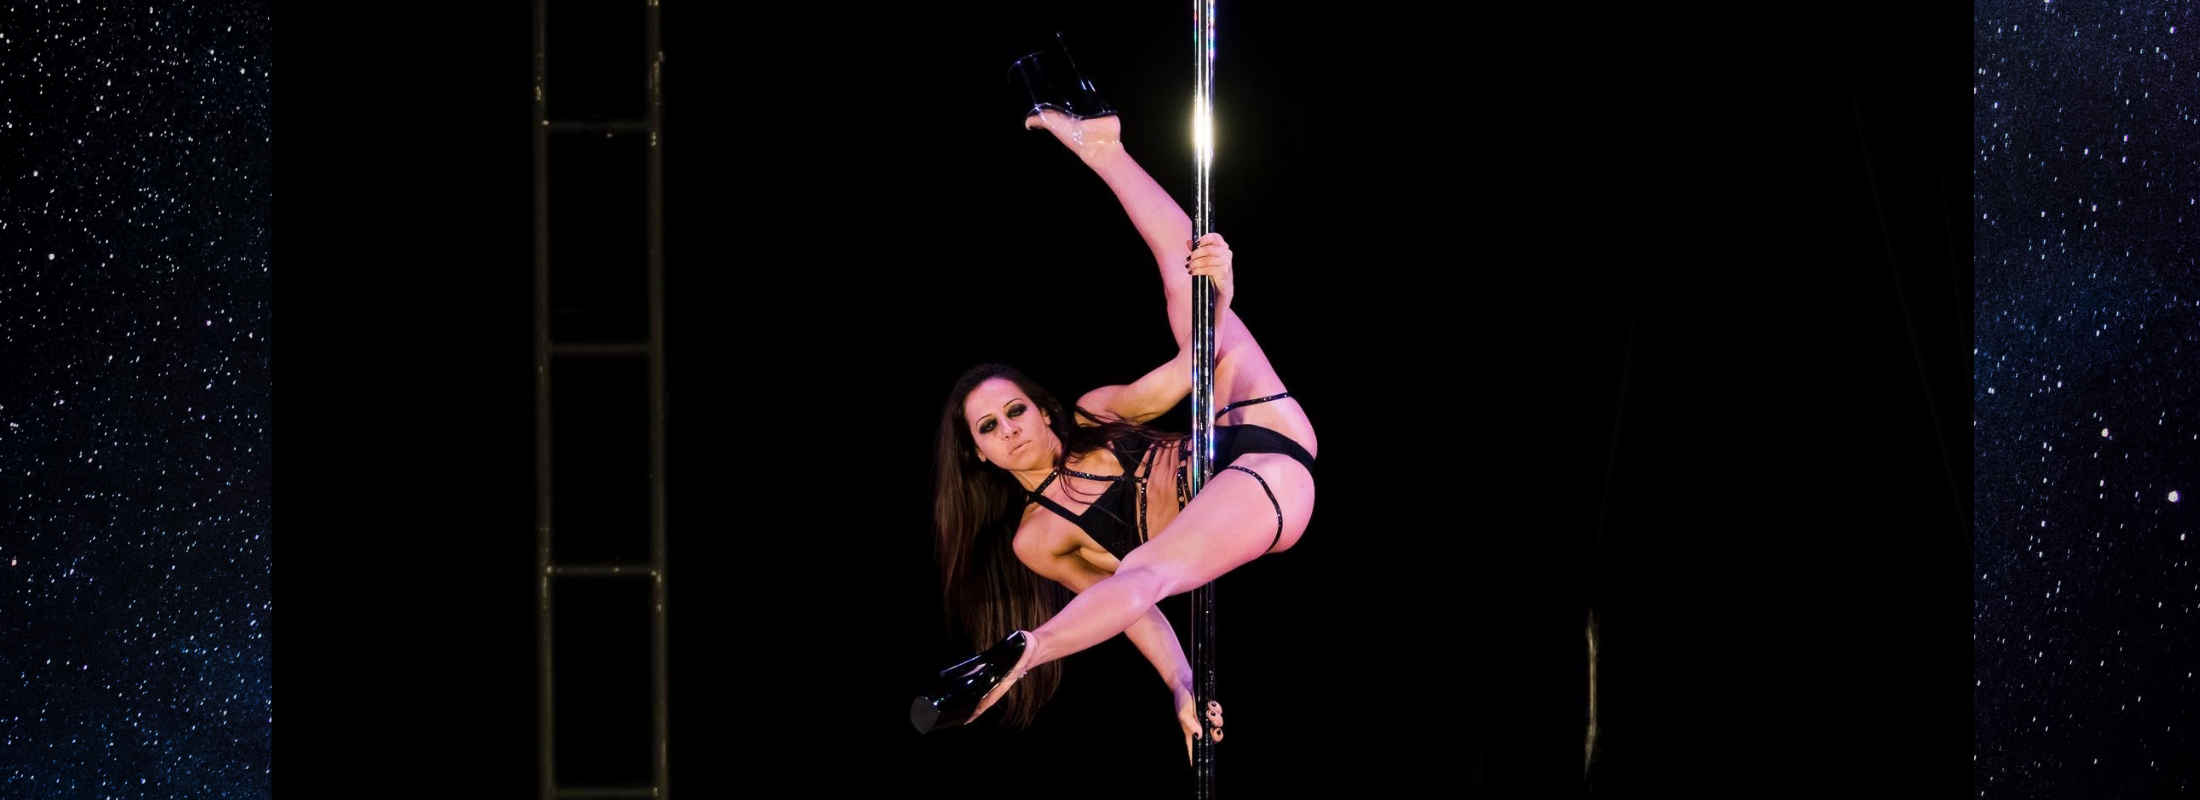 Exotic Pole Choreography - A Workshop with Exotic Pole Champion, Suzy G